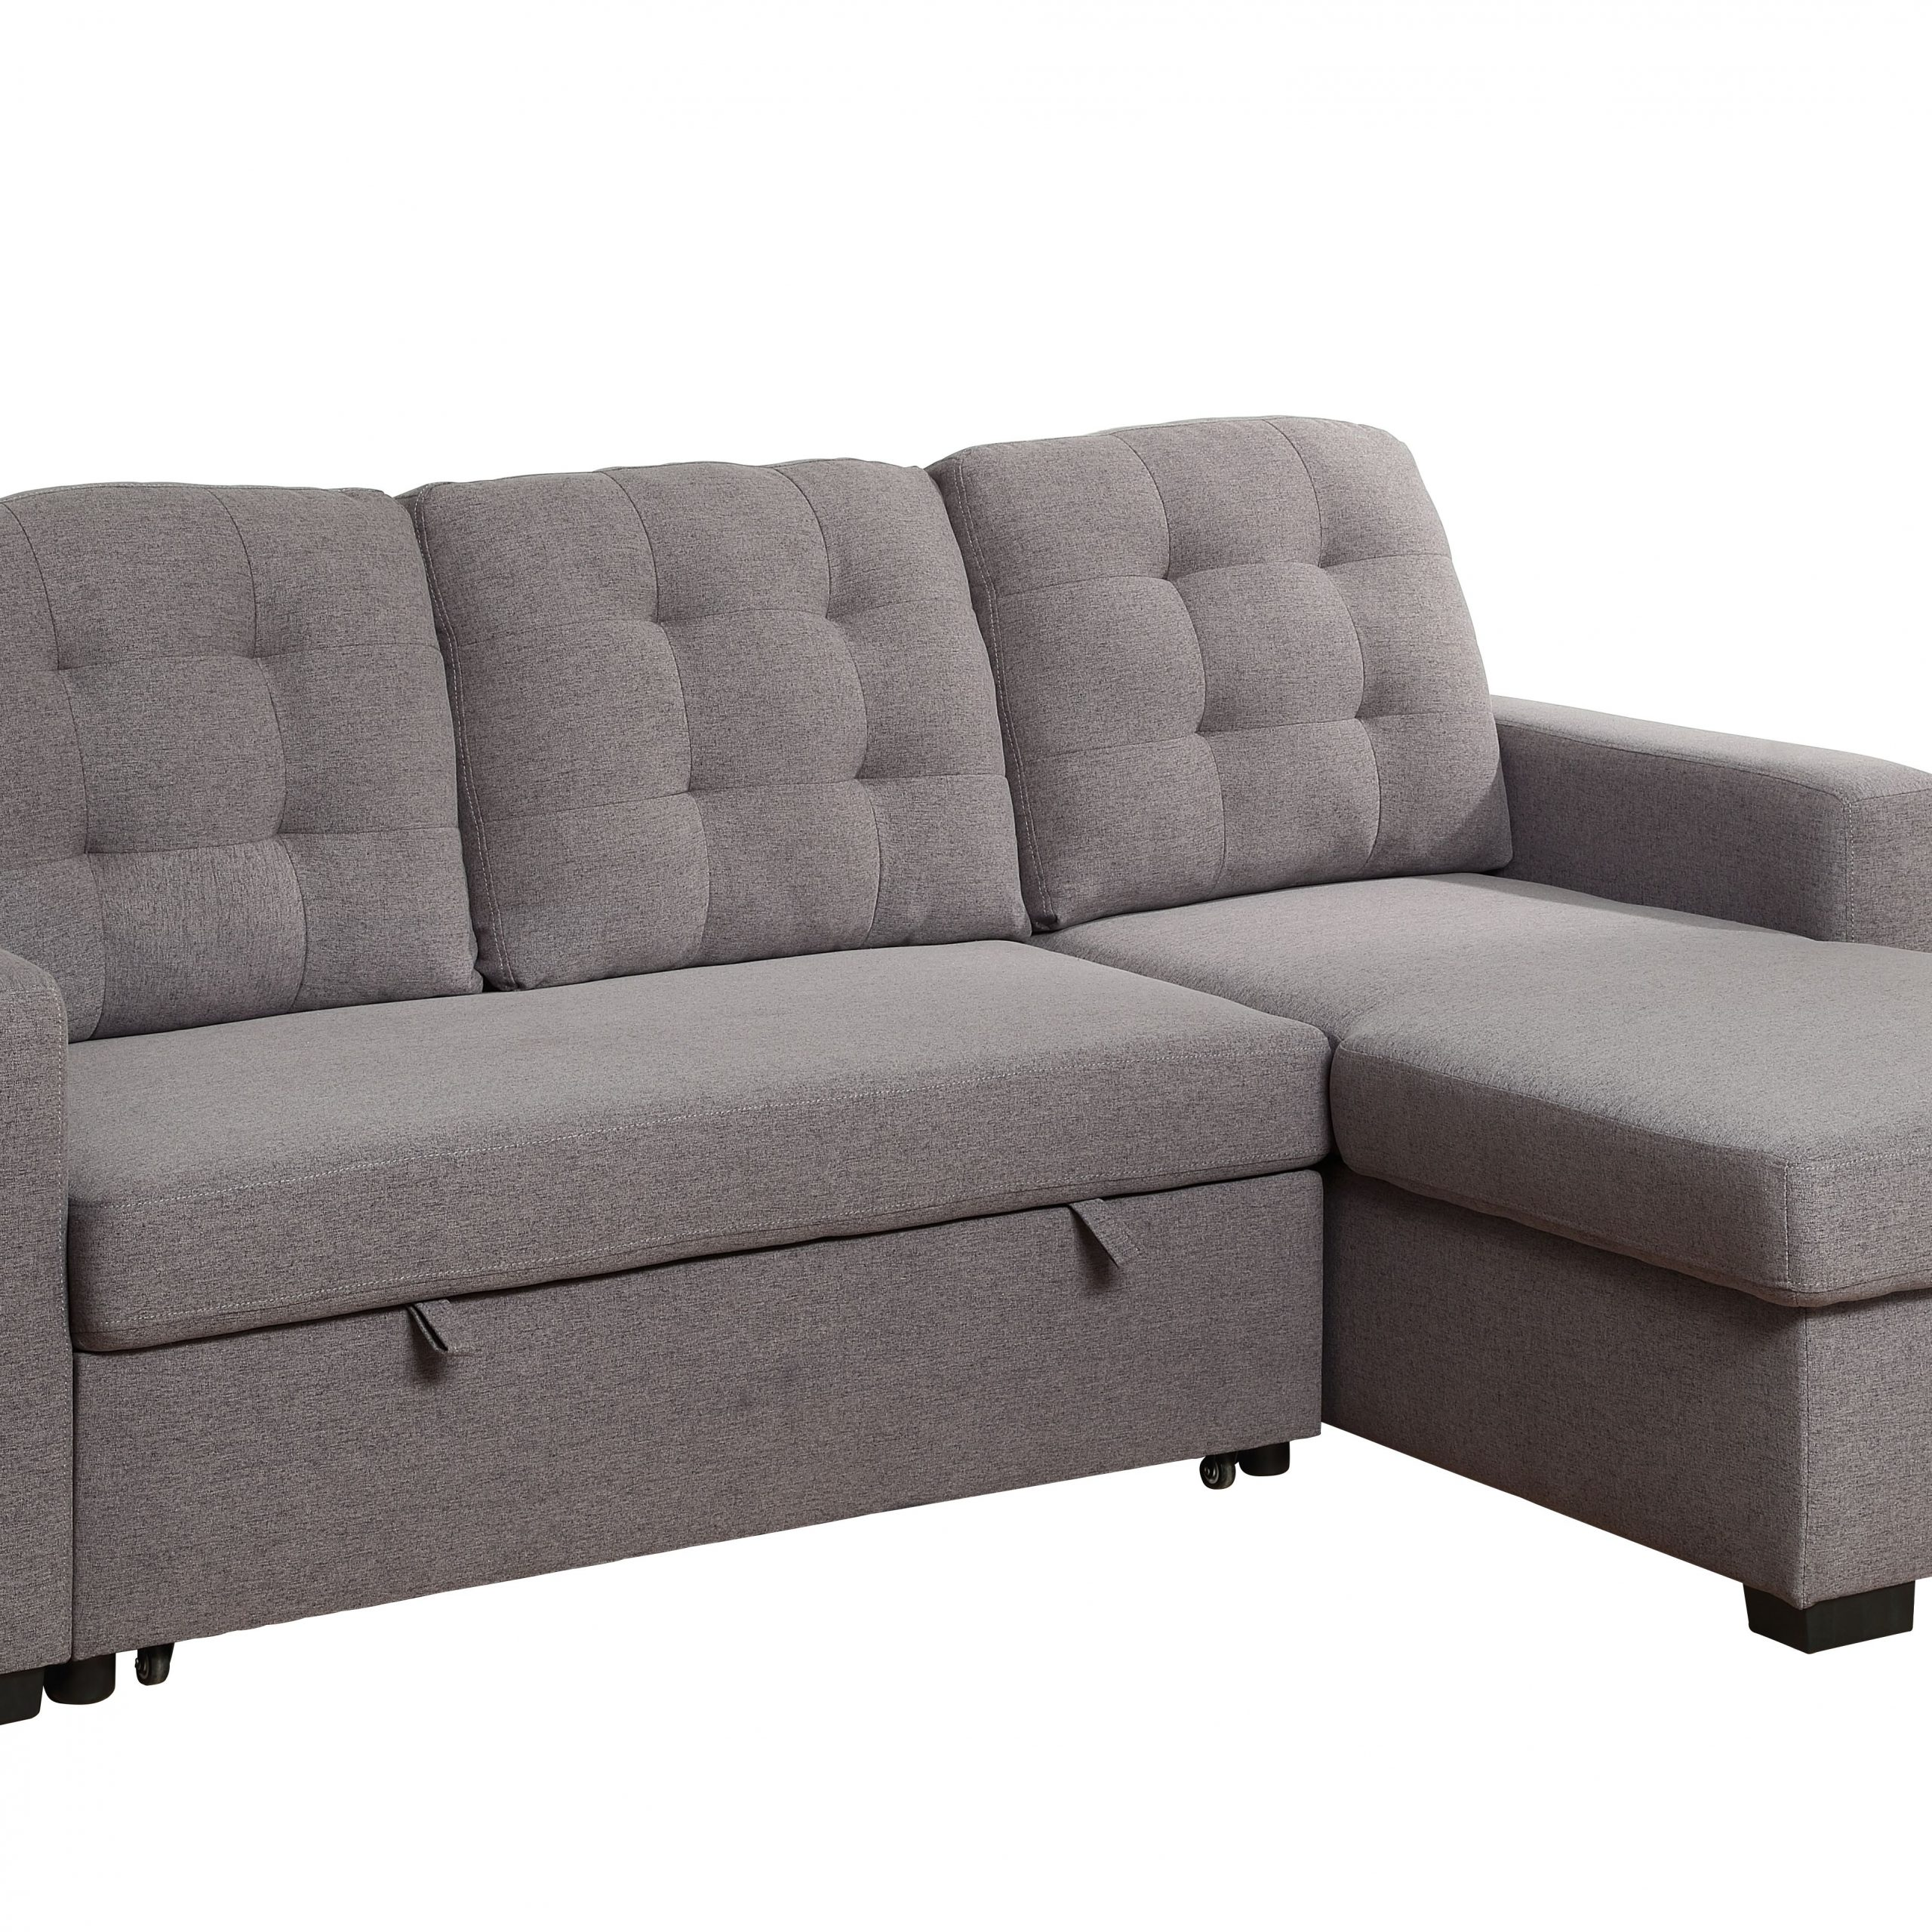 Chambord Reversible Storage Sleeper Sectional Sofa In Gray Pertaining To Palisades Reversible Small Space Sectional Sofas With Storage (View 13 of 15)